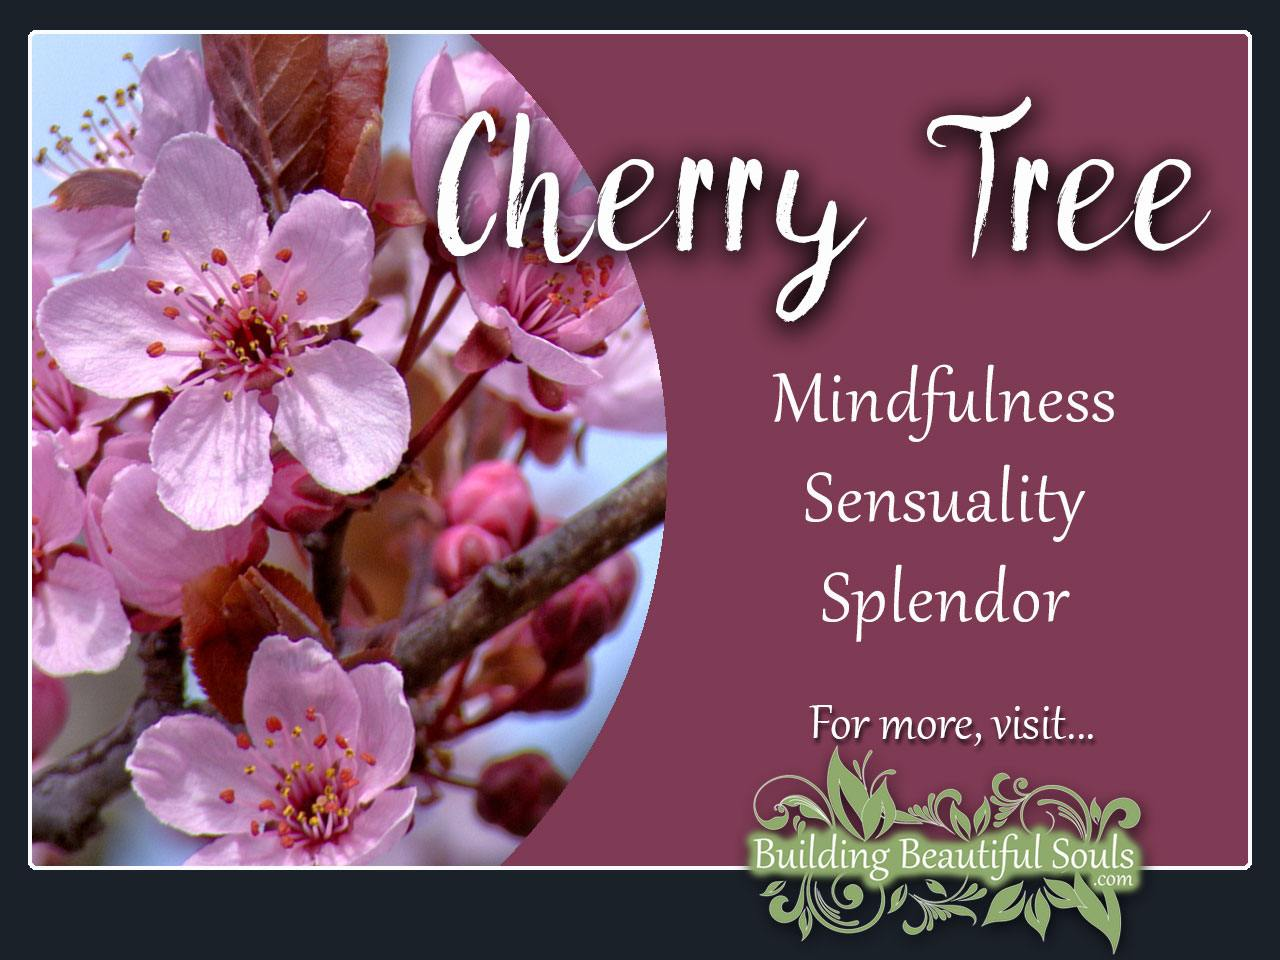 Comfy Cherry Tree Meaning Symbolism Flower Meanings Cherry Tree Meaning Symbolism Tree Symbolism Meanings Stella Cherry Tree Problems Stella Cherry Tree Colorado houzz-03 Stella Cherry Tree